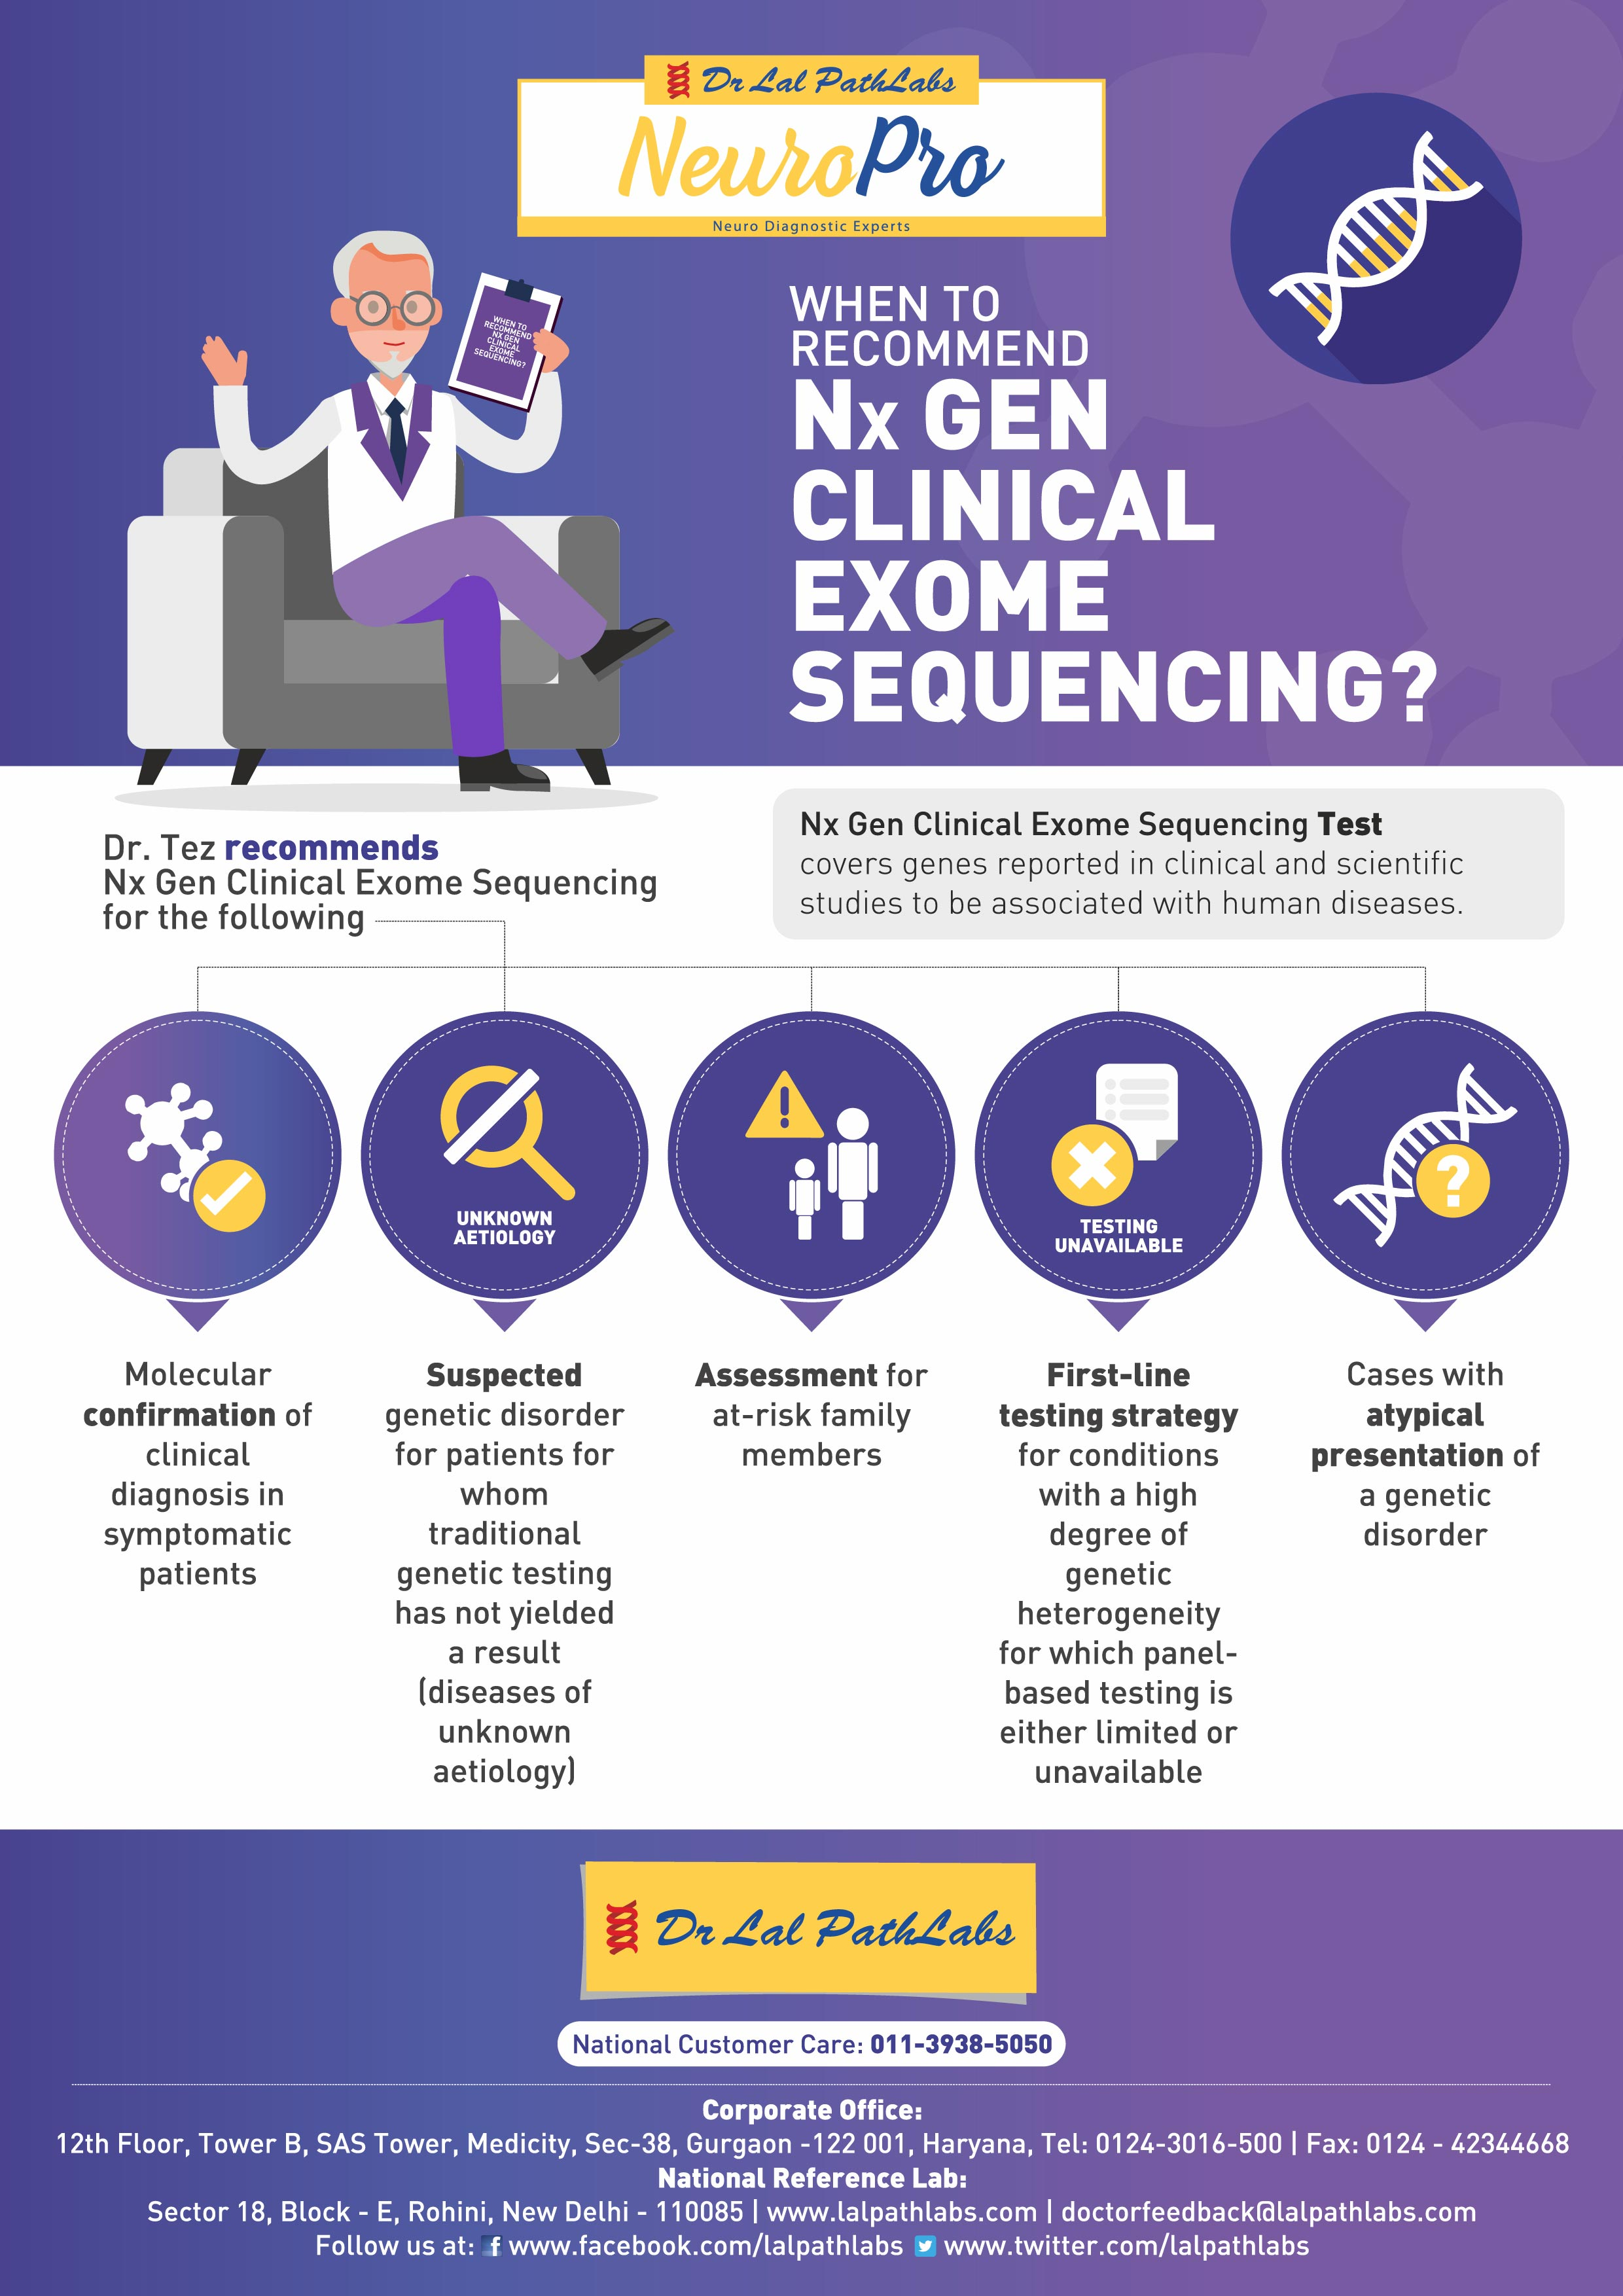 When To Recommend Nx Gen Clinical Exome Sequencing